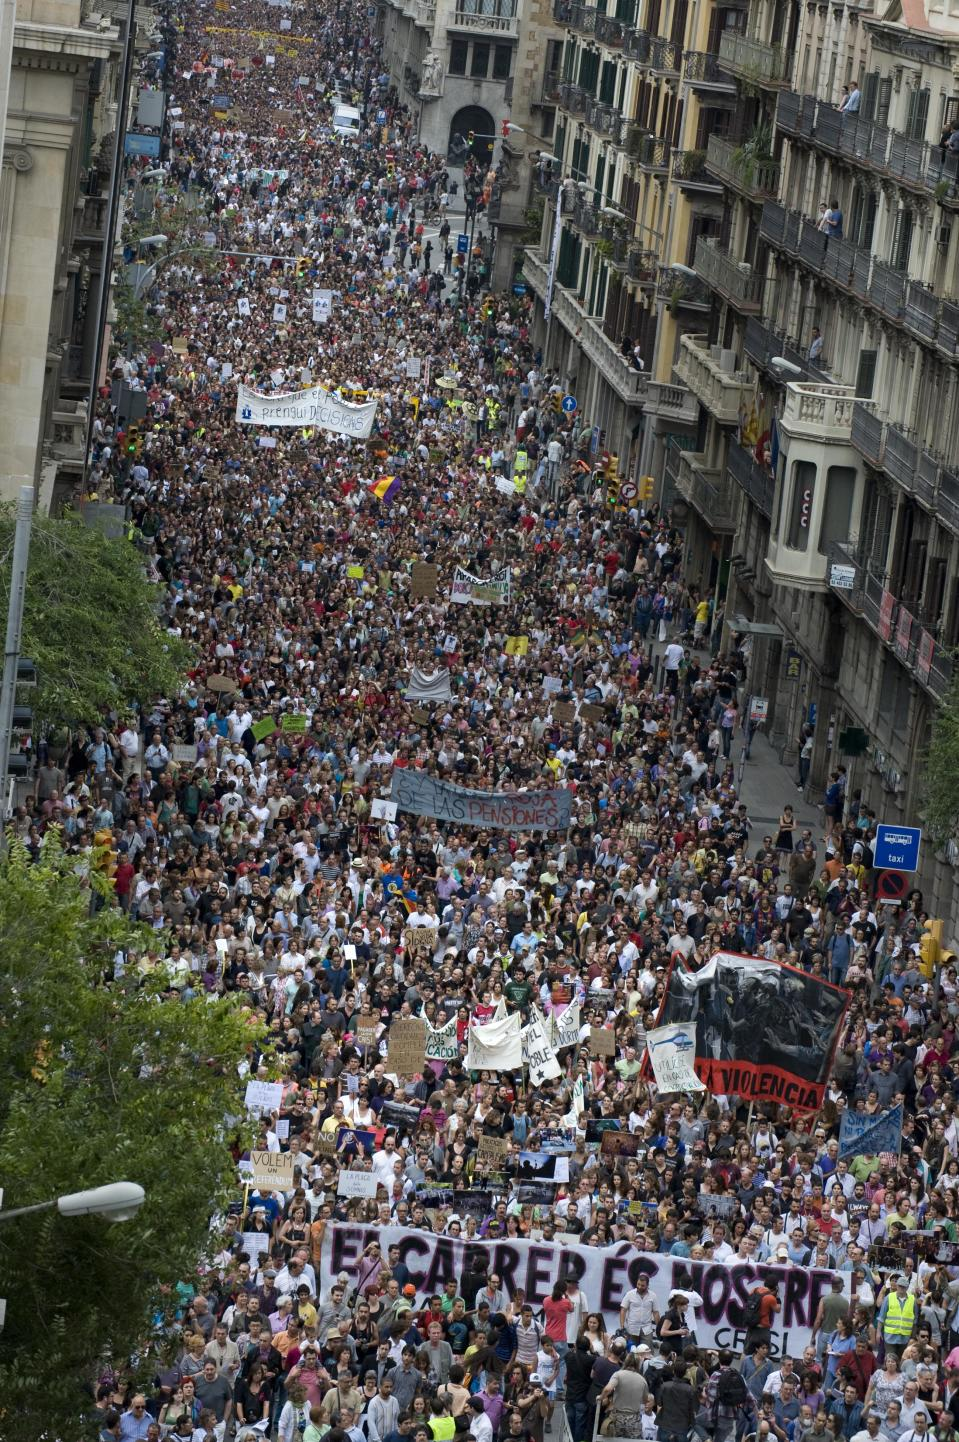 """Thousand of 'indignants' hold banners and shout slogans against the Euro zone leaders's agreed 'Pact For The Euro' on June 19, 2011 in Barcelona, Spain. Thousands of Spaniards joined marches across Spain to protest against how the country's economic crisis is being handled and the so-called """"Euro Pact"""", aimed at increasing the bloc's competitiveness and economic stability. (Photo by David Ramos/Getty Images)"""